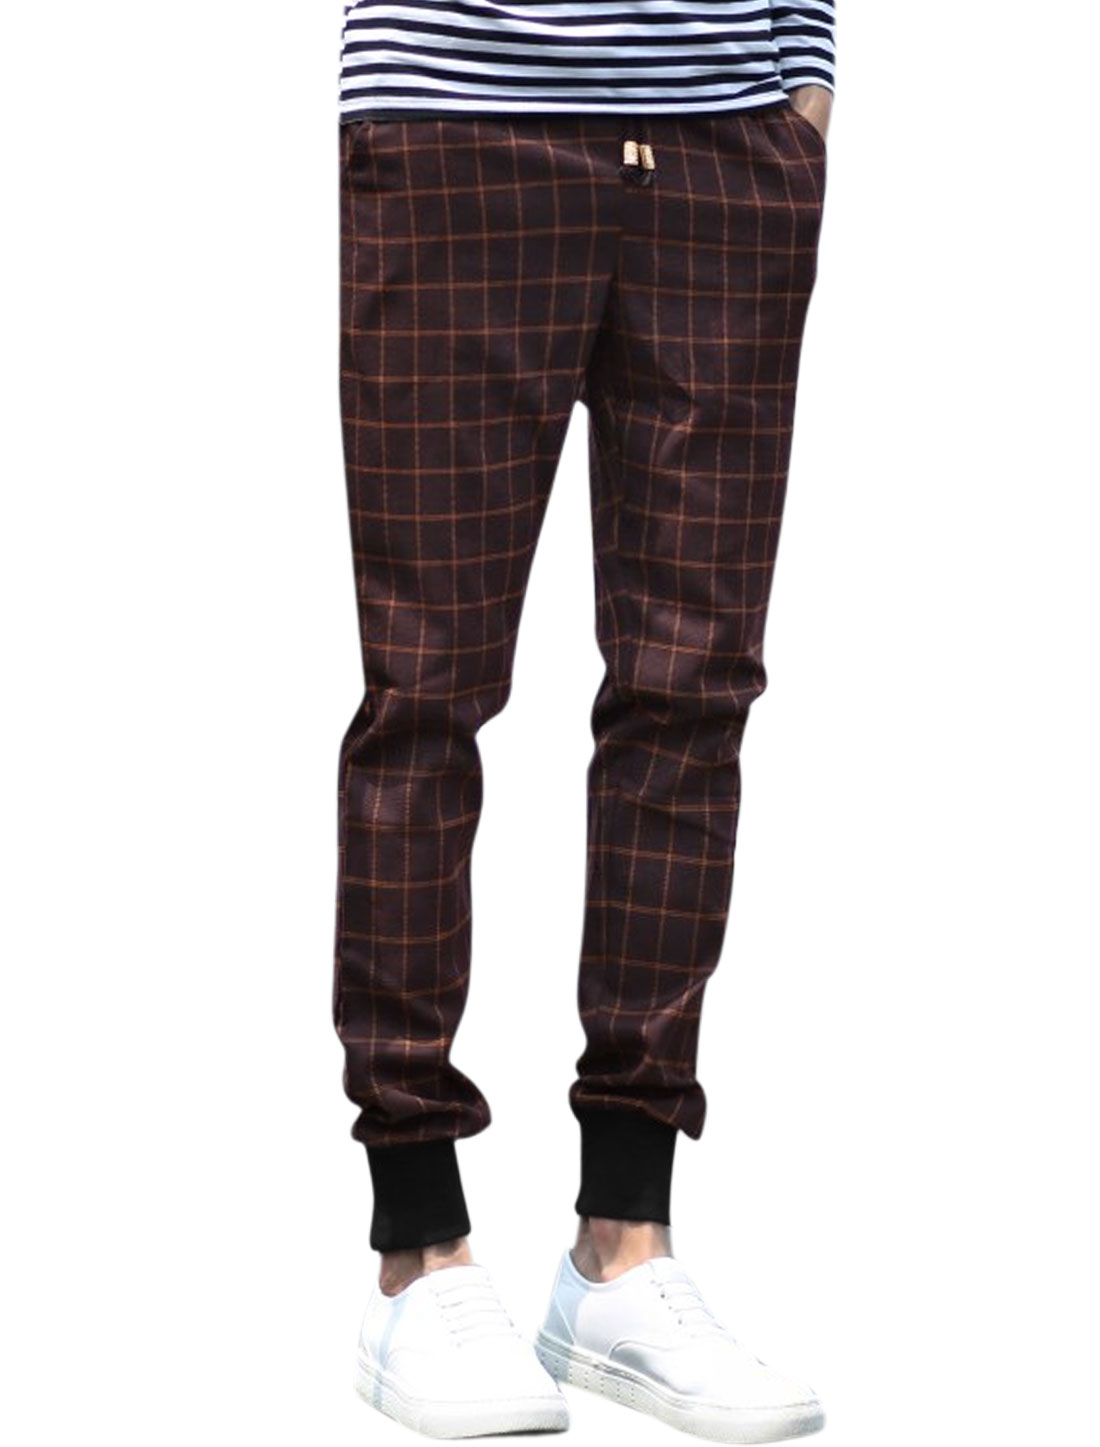 Men Natural Waist Two Slant Pockets Plaids Casual Trousers Red W30